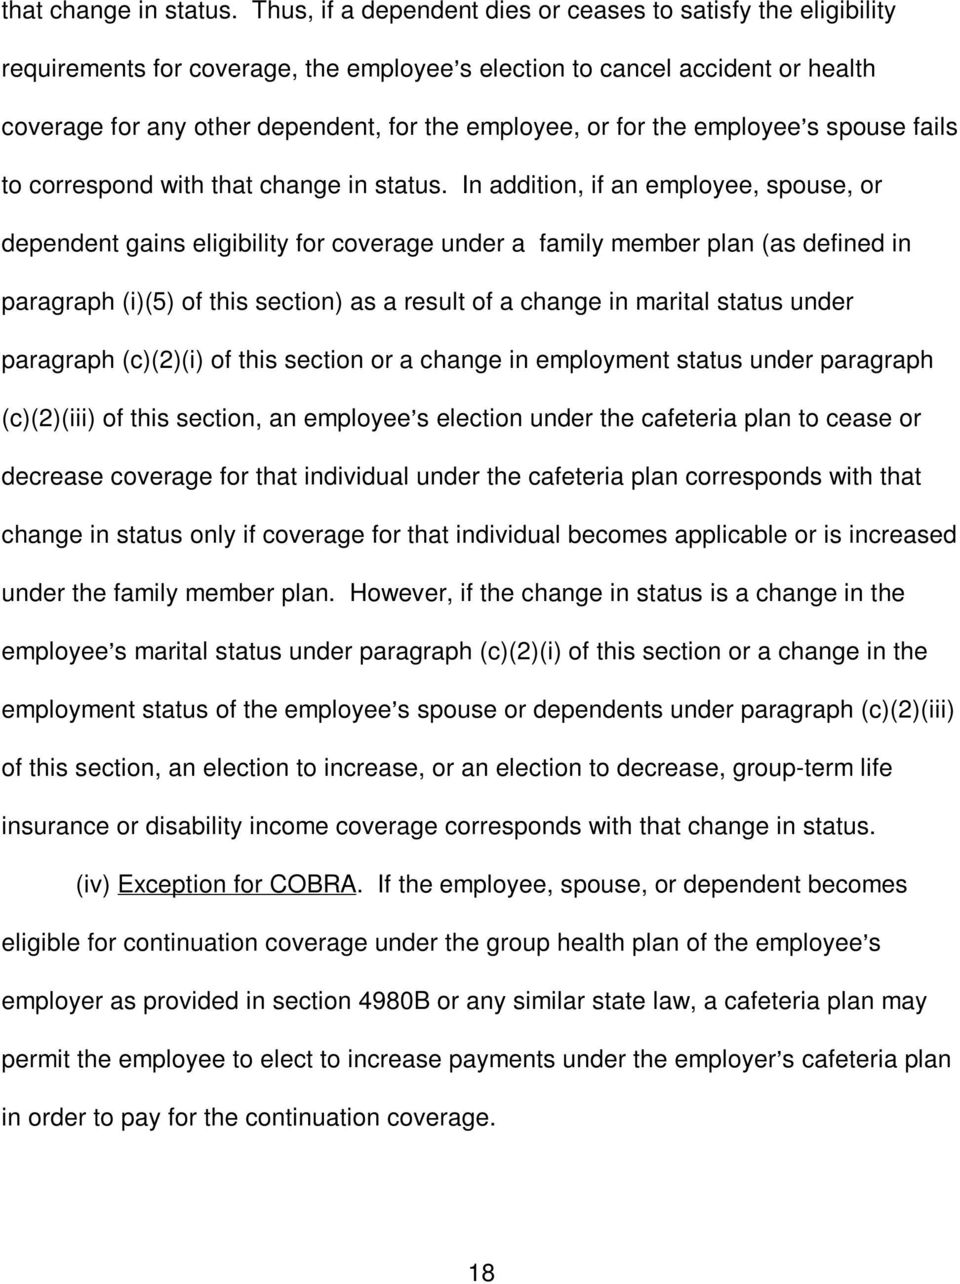 for the employee=s spouse fails to correspond with  In addition, if an employee, spouse, or dependent gains eligibility for coverage under a family member plan (as defined in paragraph (i)(5) of this